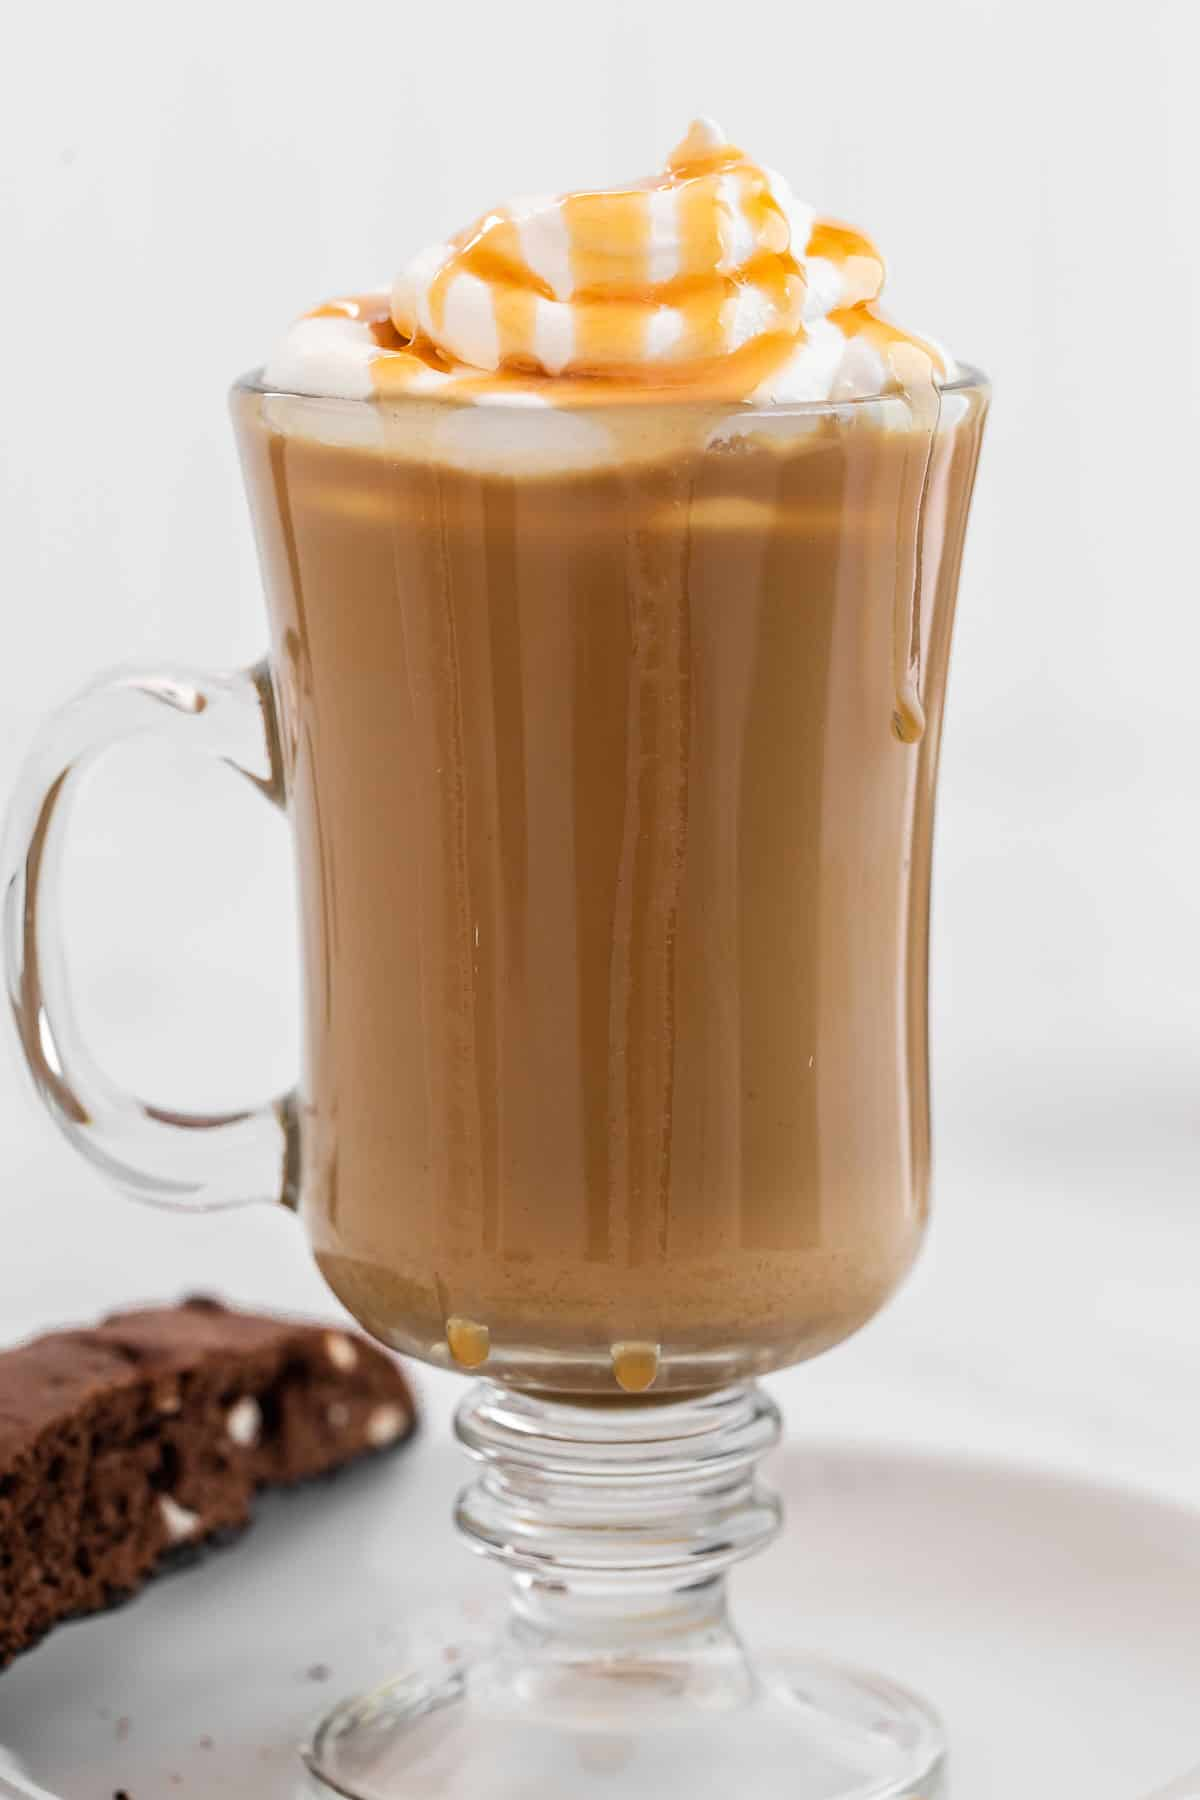 Close up of caramel latte in clear glass garnished with whipped cream and caramel.